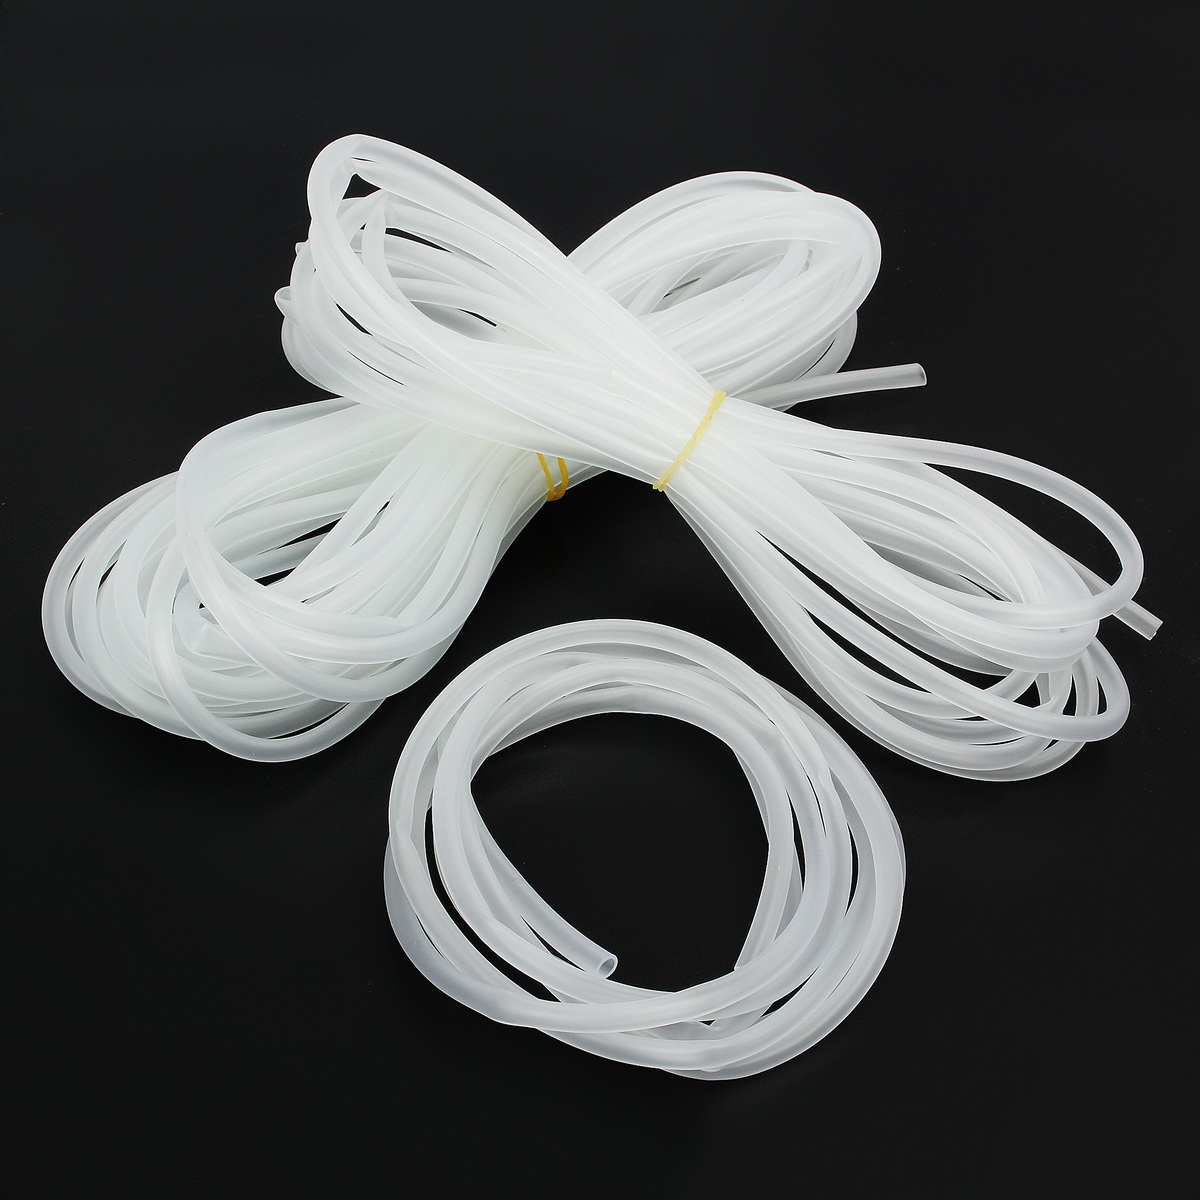 Aquarium Soft PVC Hose Tube Pipe For Fish Pond Tank Air Pump 2/10m